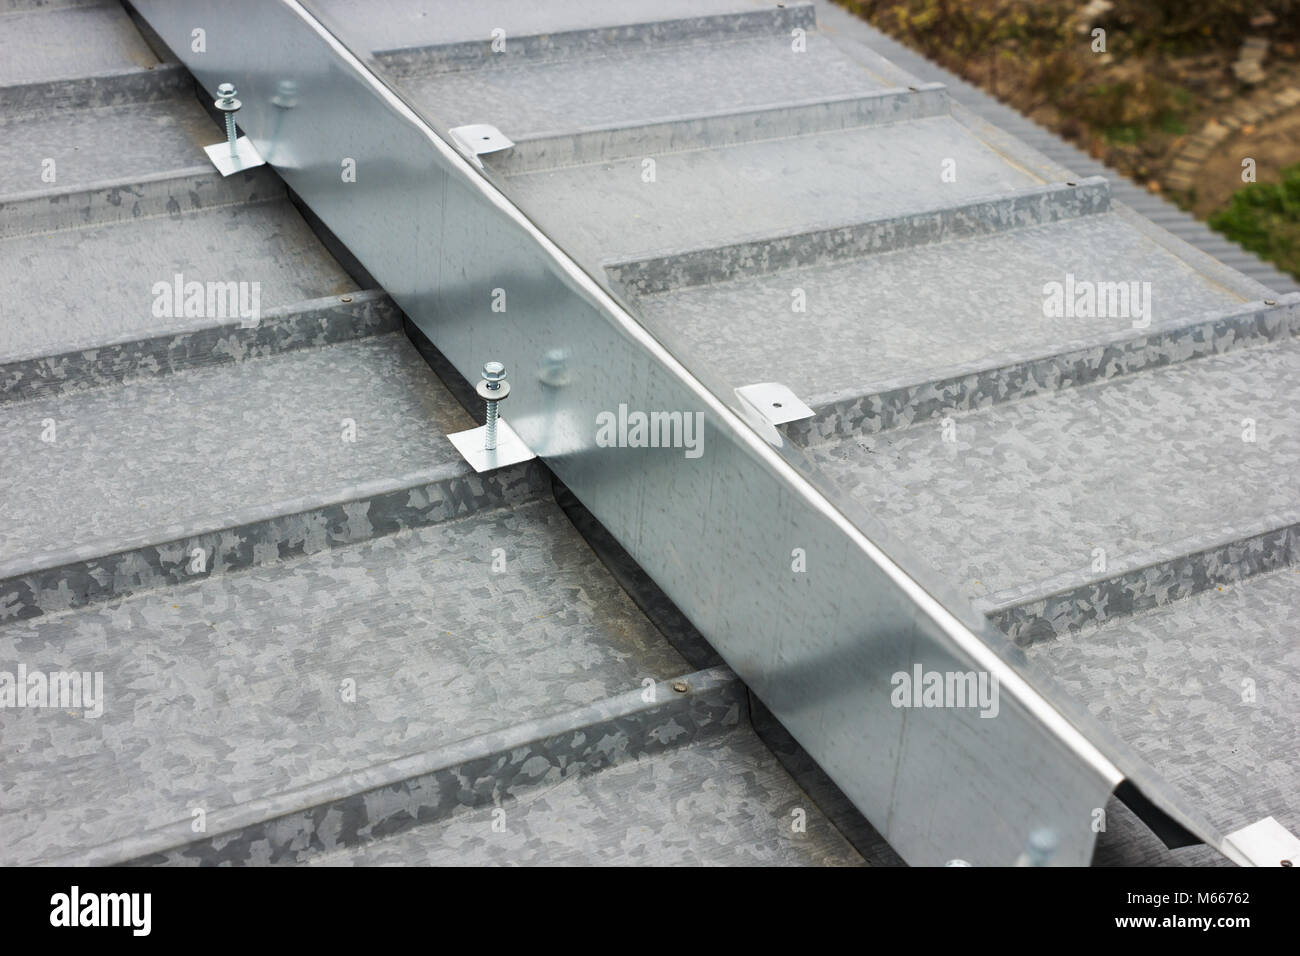 The barrier for snow retention on the metal roof - Stock Image